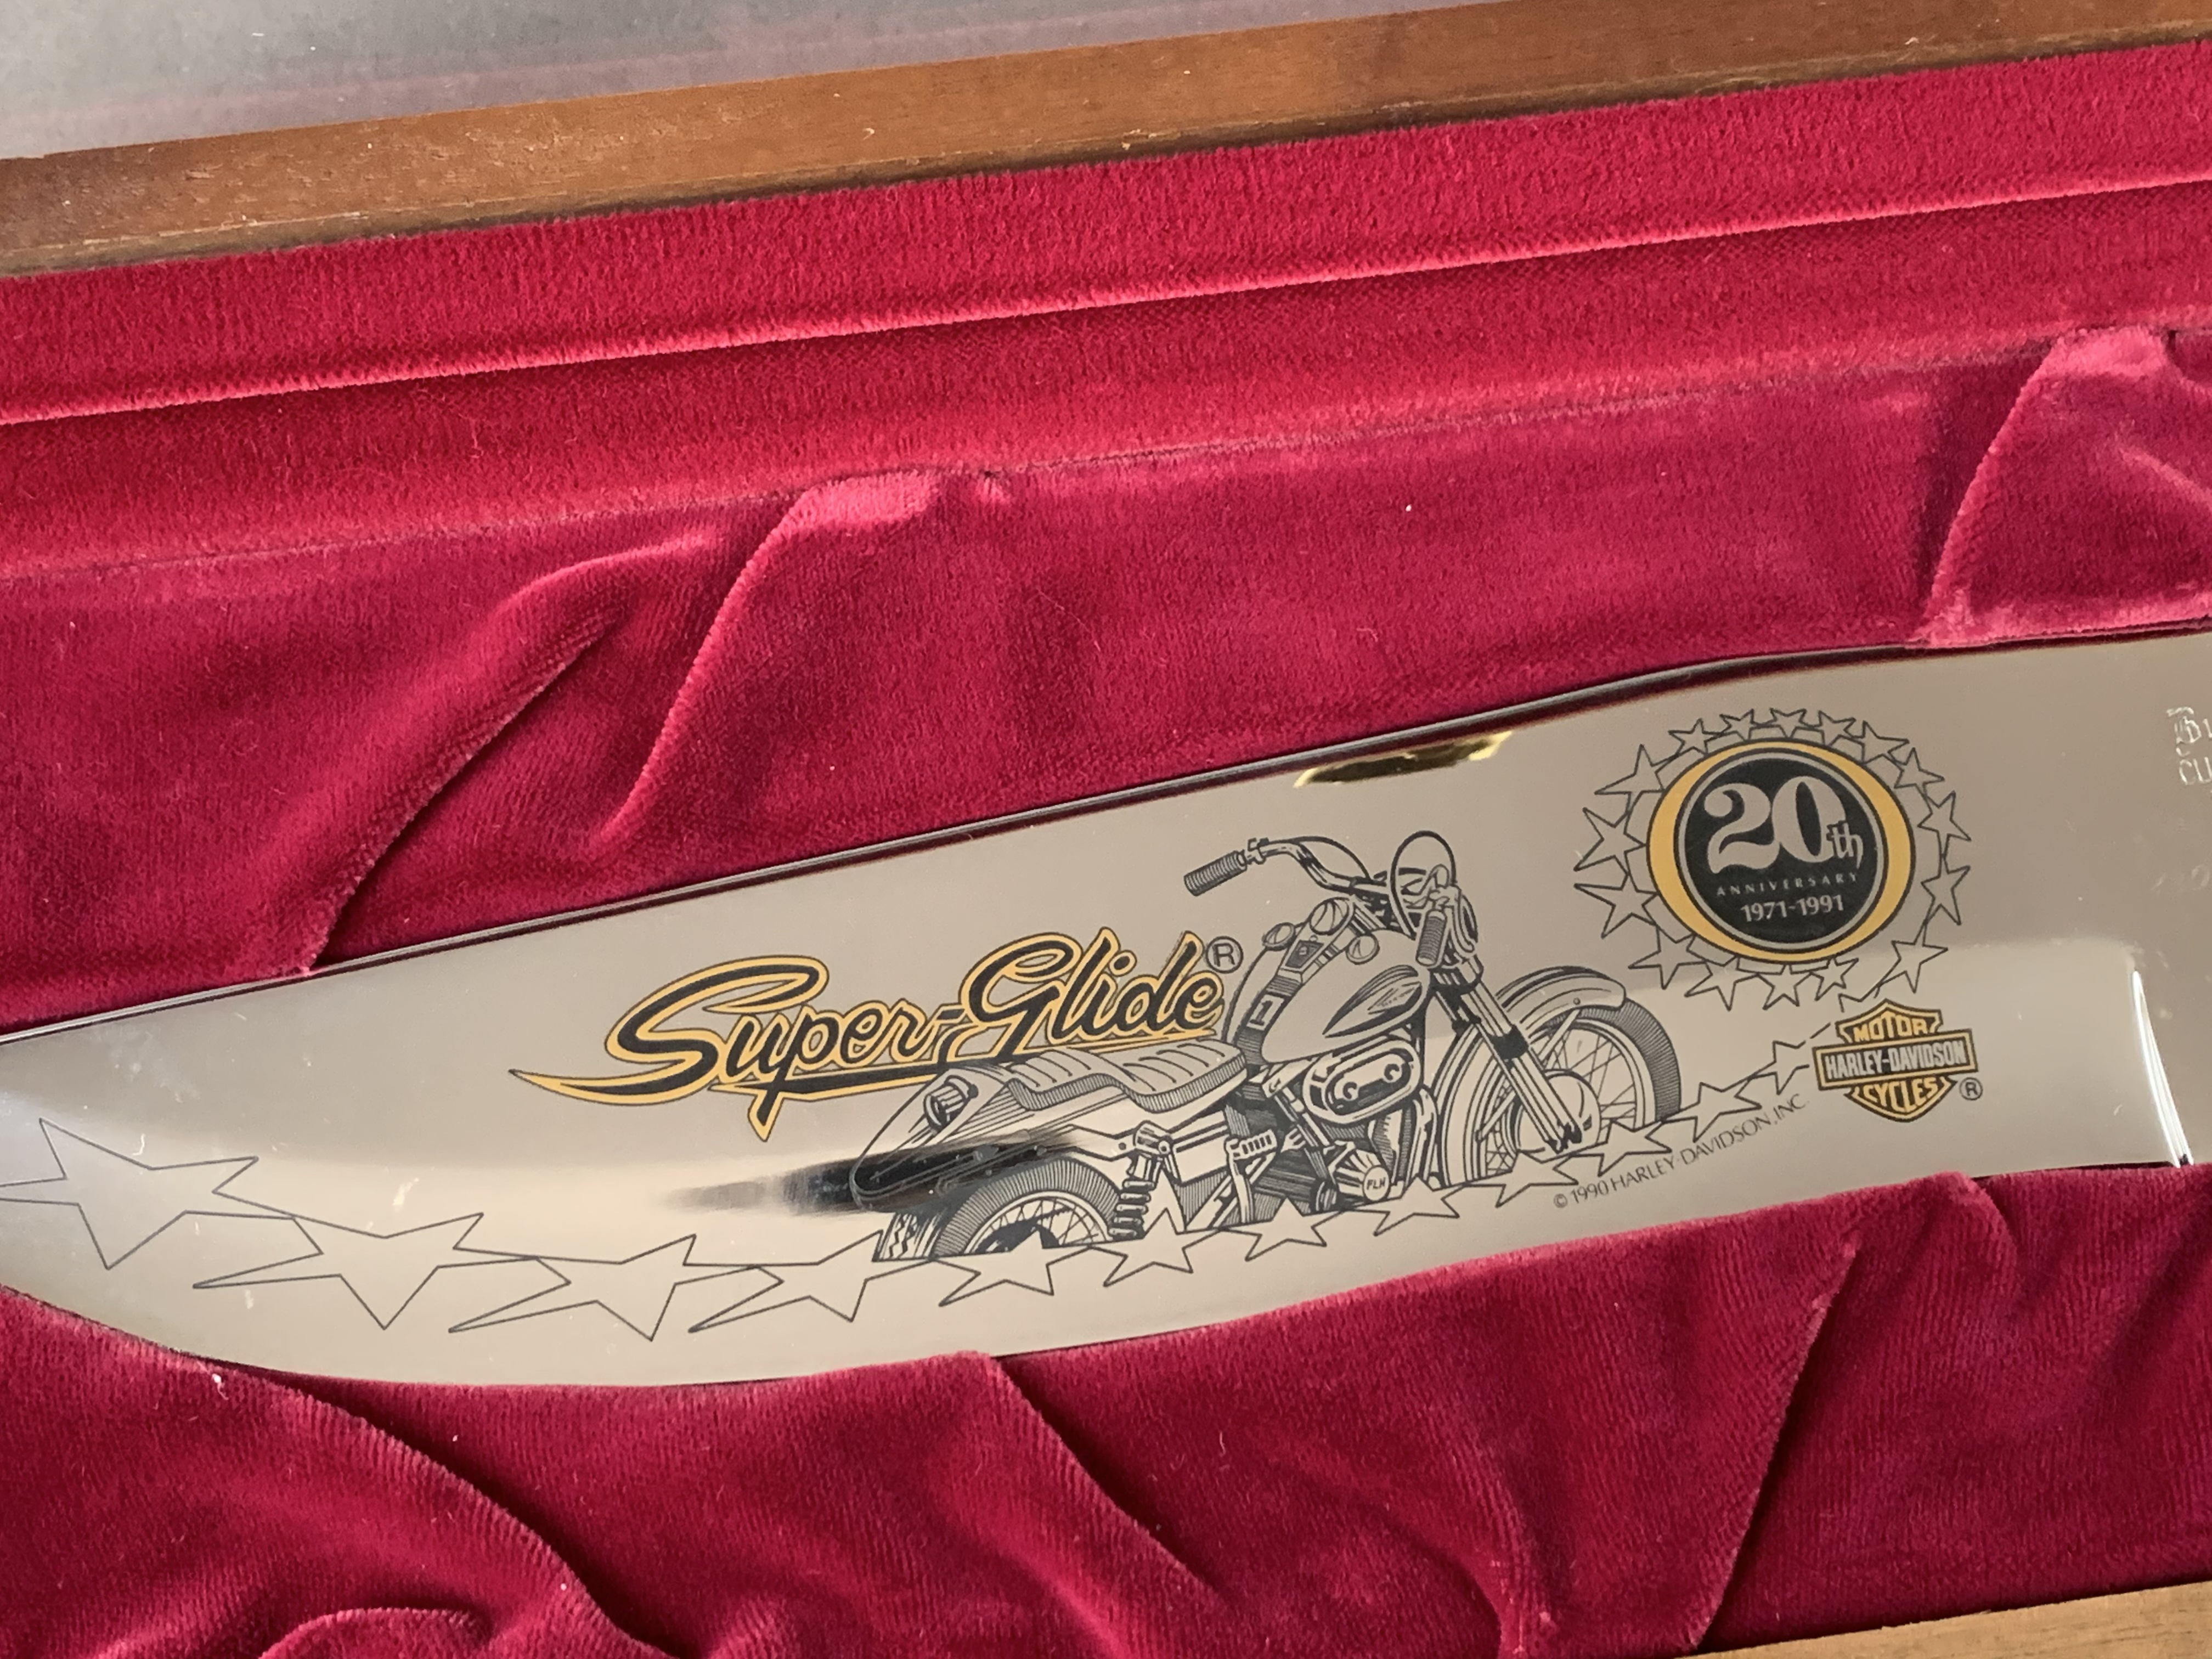 Harley-Davidson  knife commemorating   the 20th Anniversary of the superglide